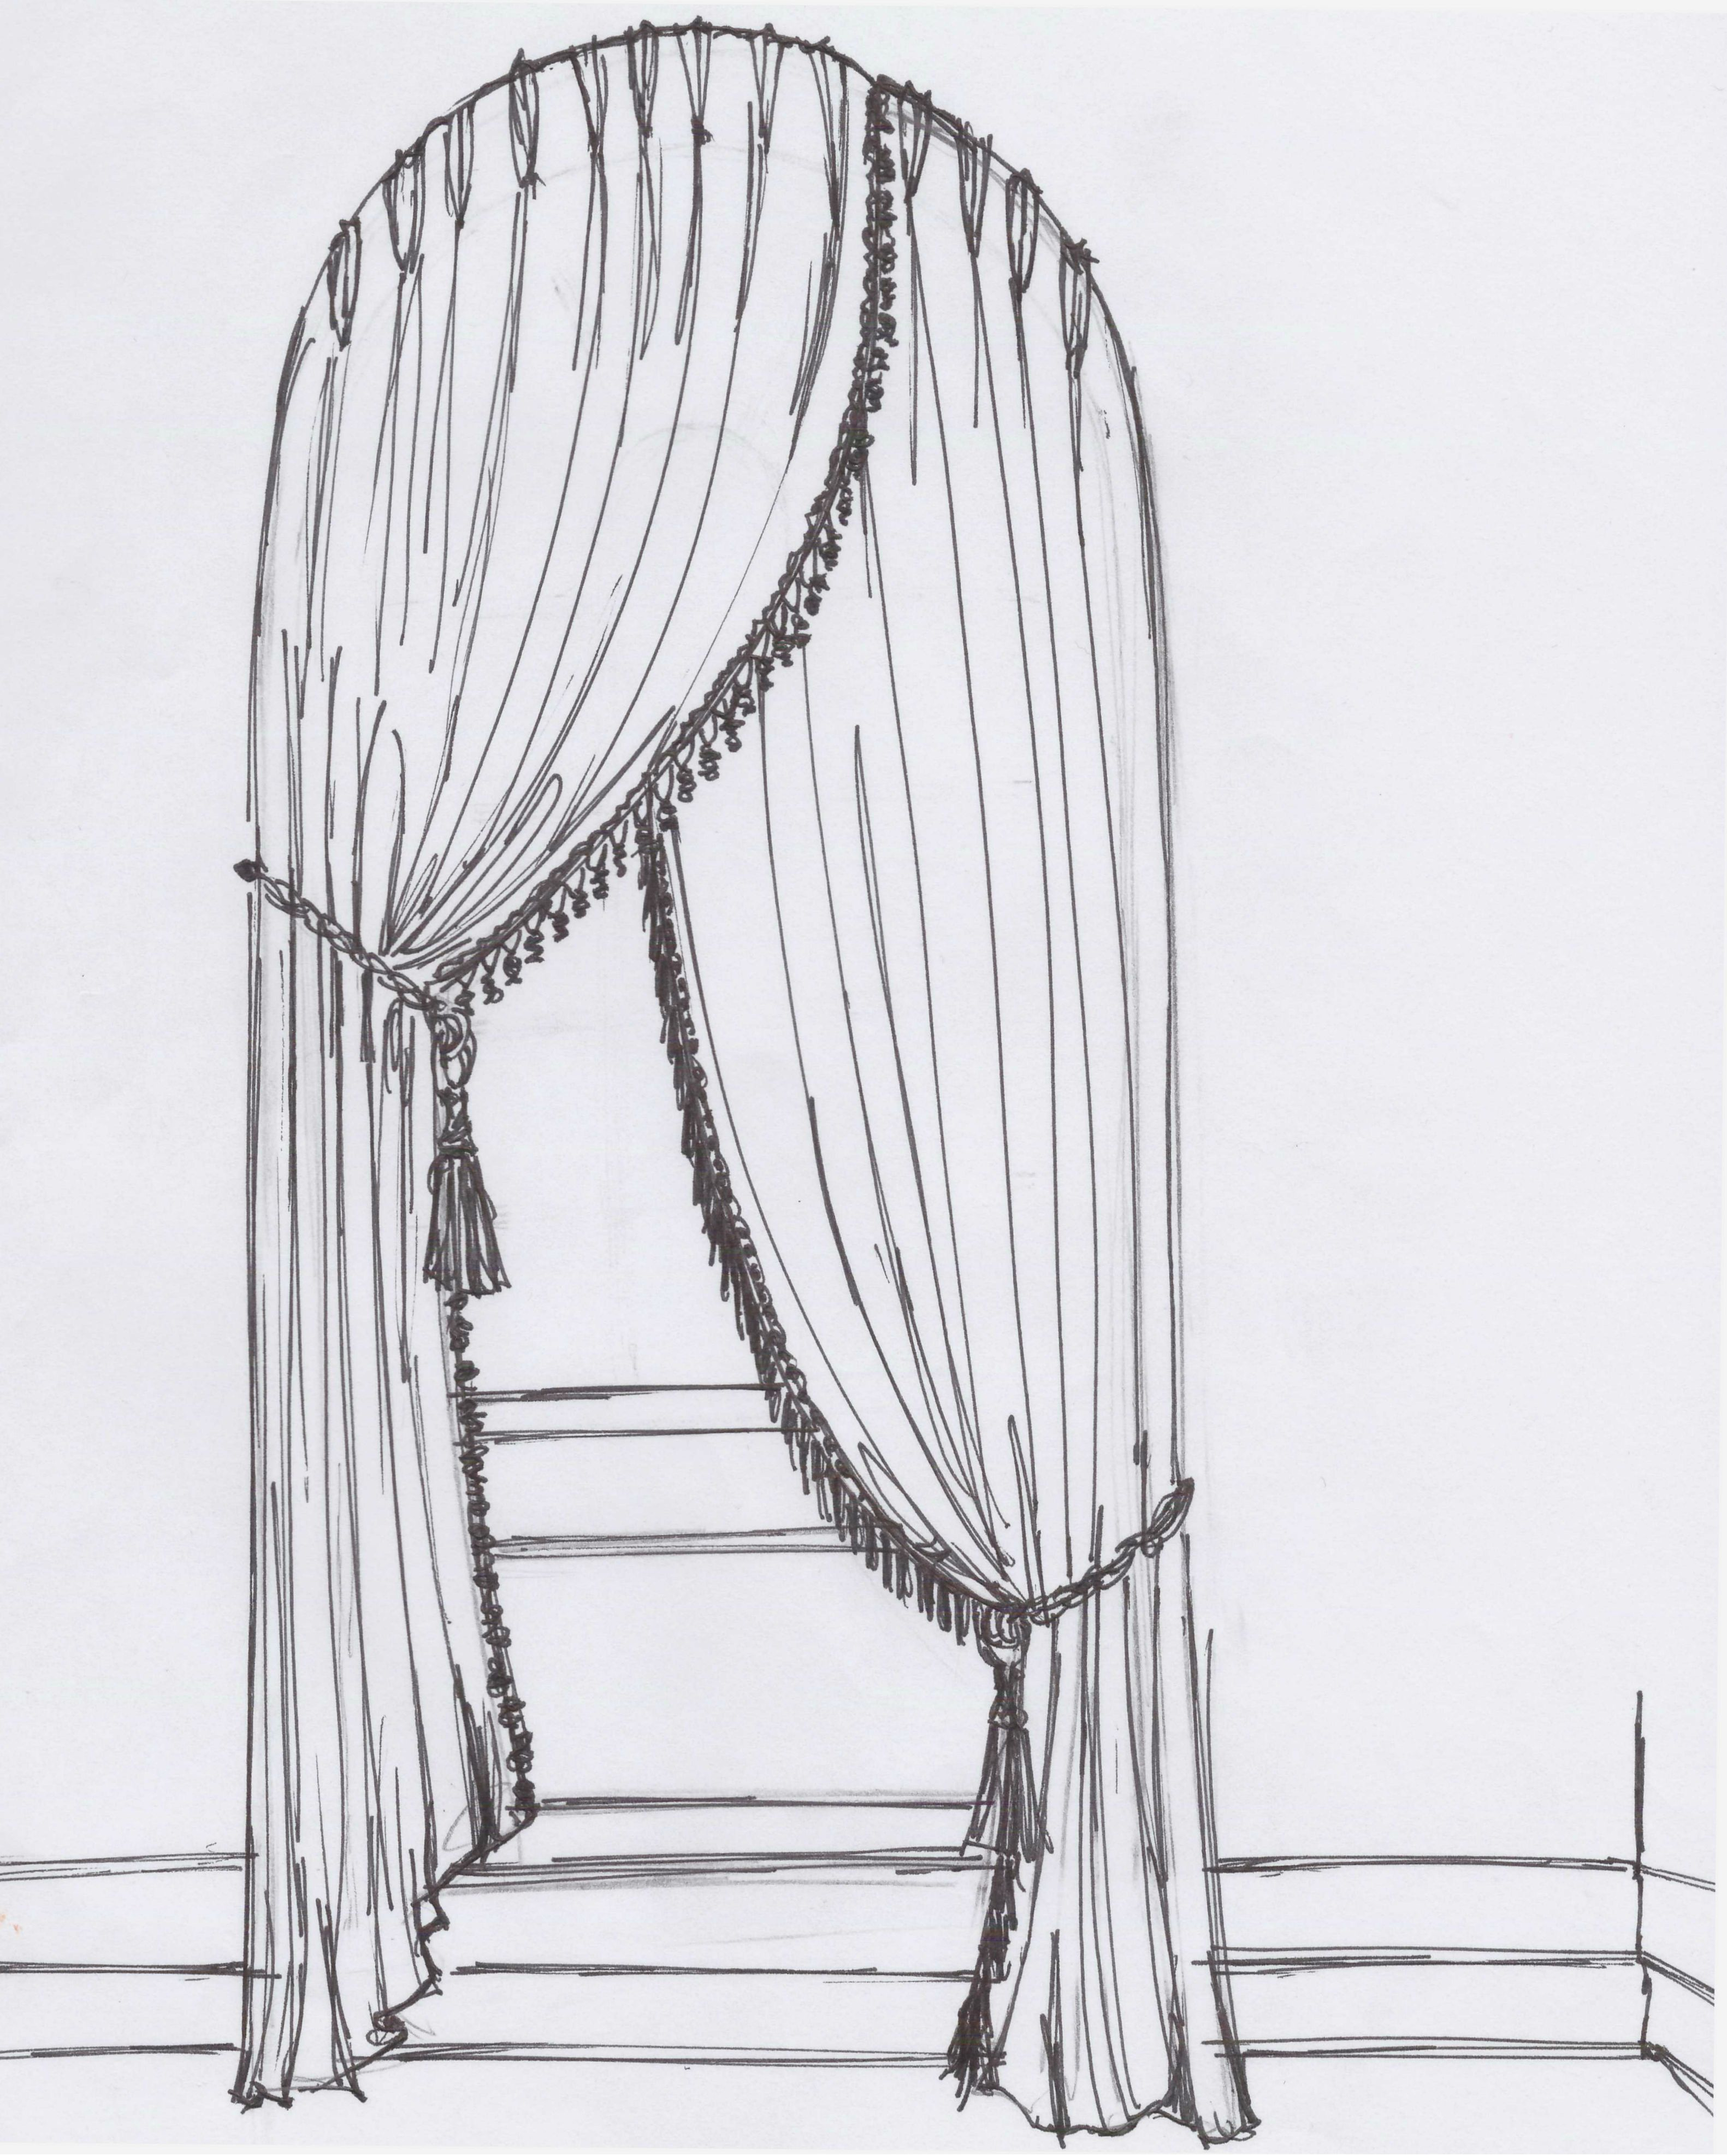 clipart royalty free library Asymmetrical drawing. Curtain sketch in sketches